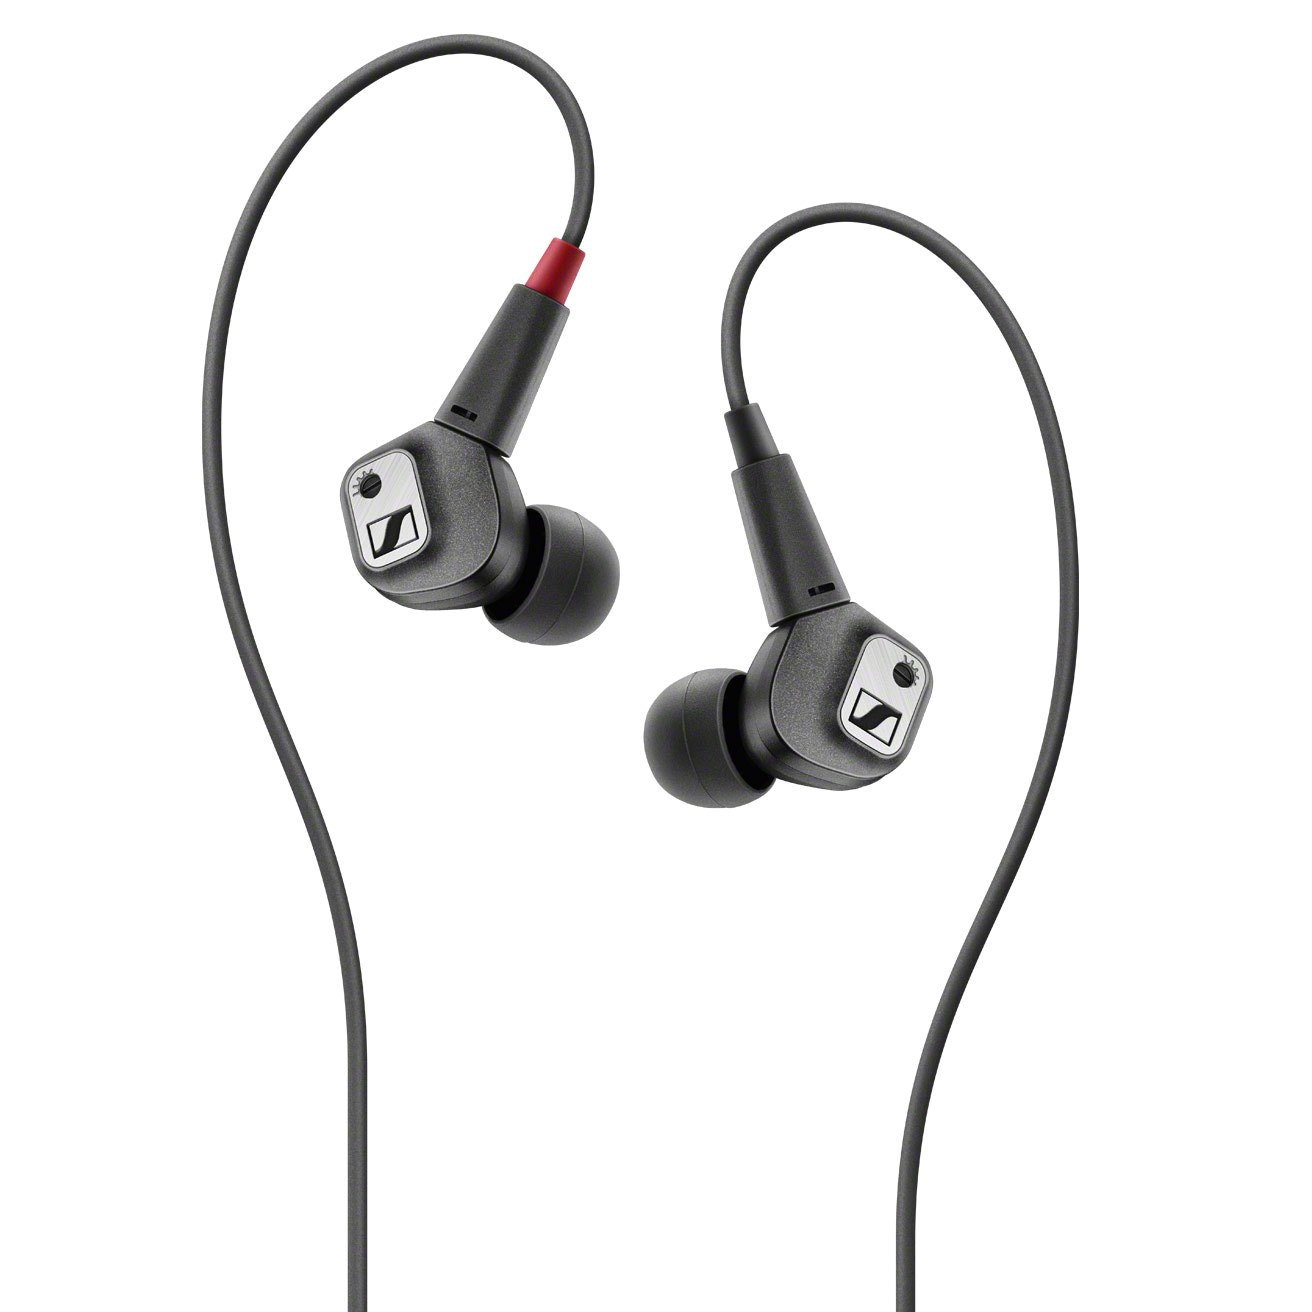 Sennheiser IE 80 S - Earphones In Ear Headphones High End - Noise Reducing